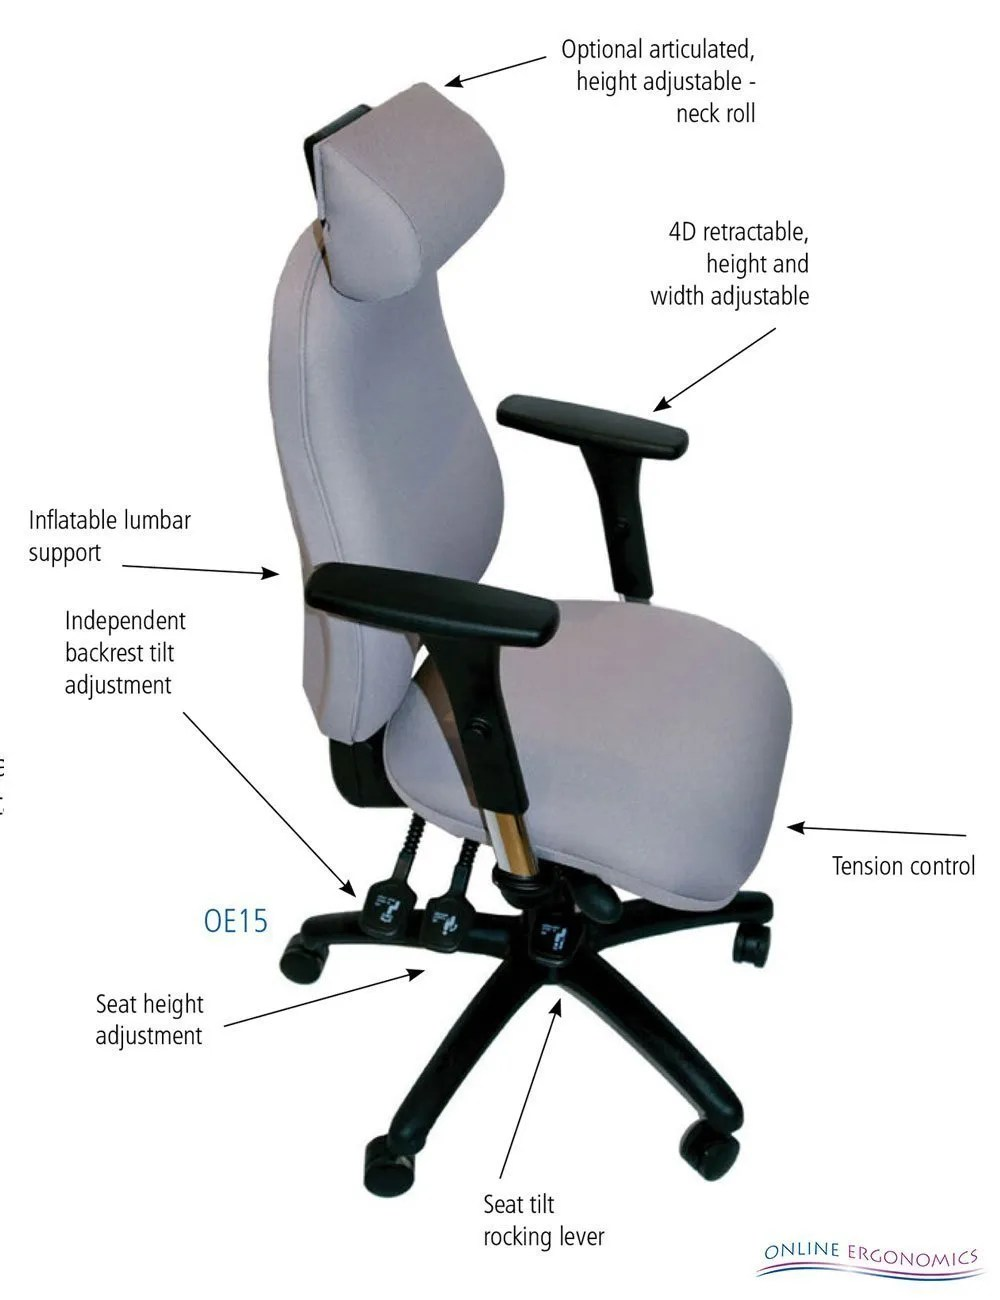 OE15 Ergonomic Chair  Online Ergonomics